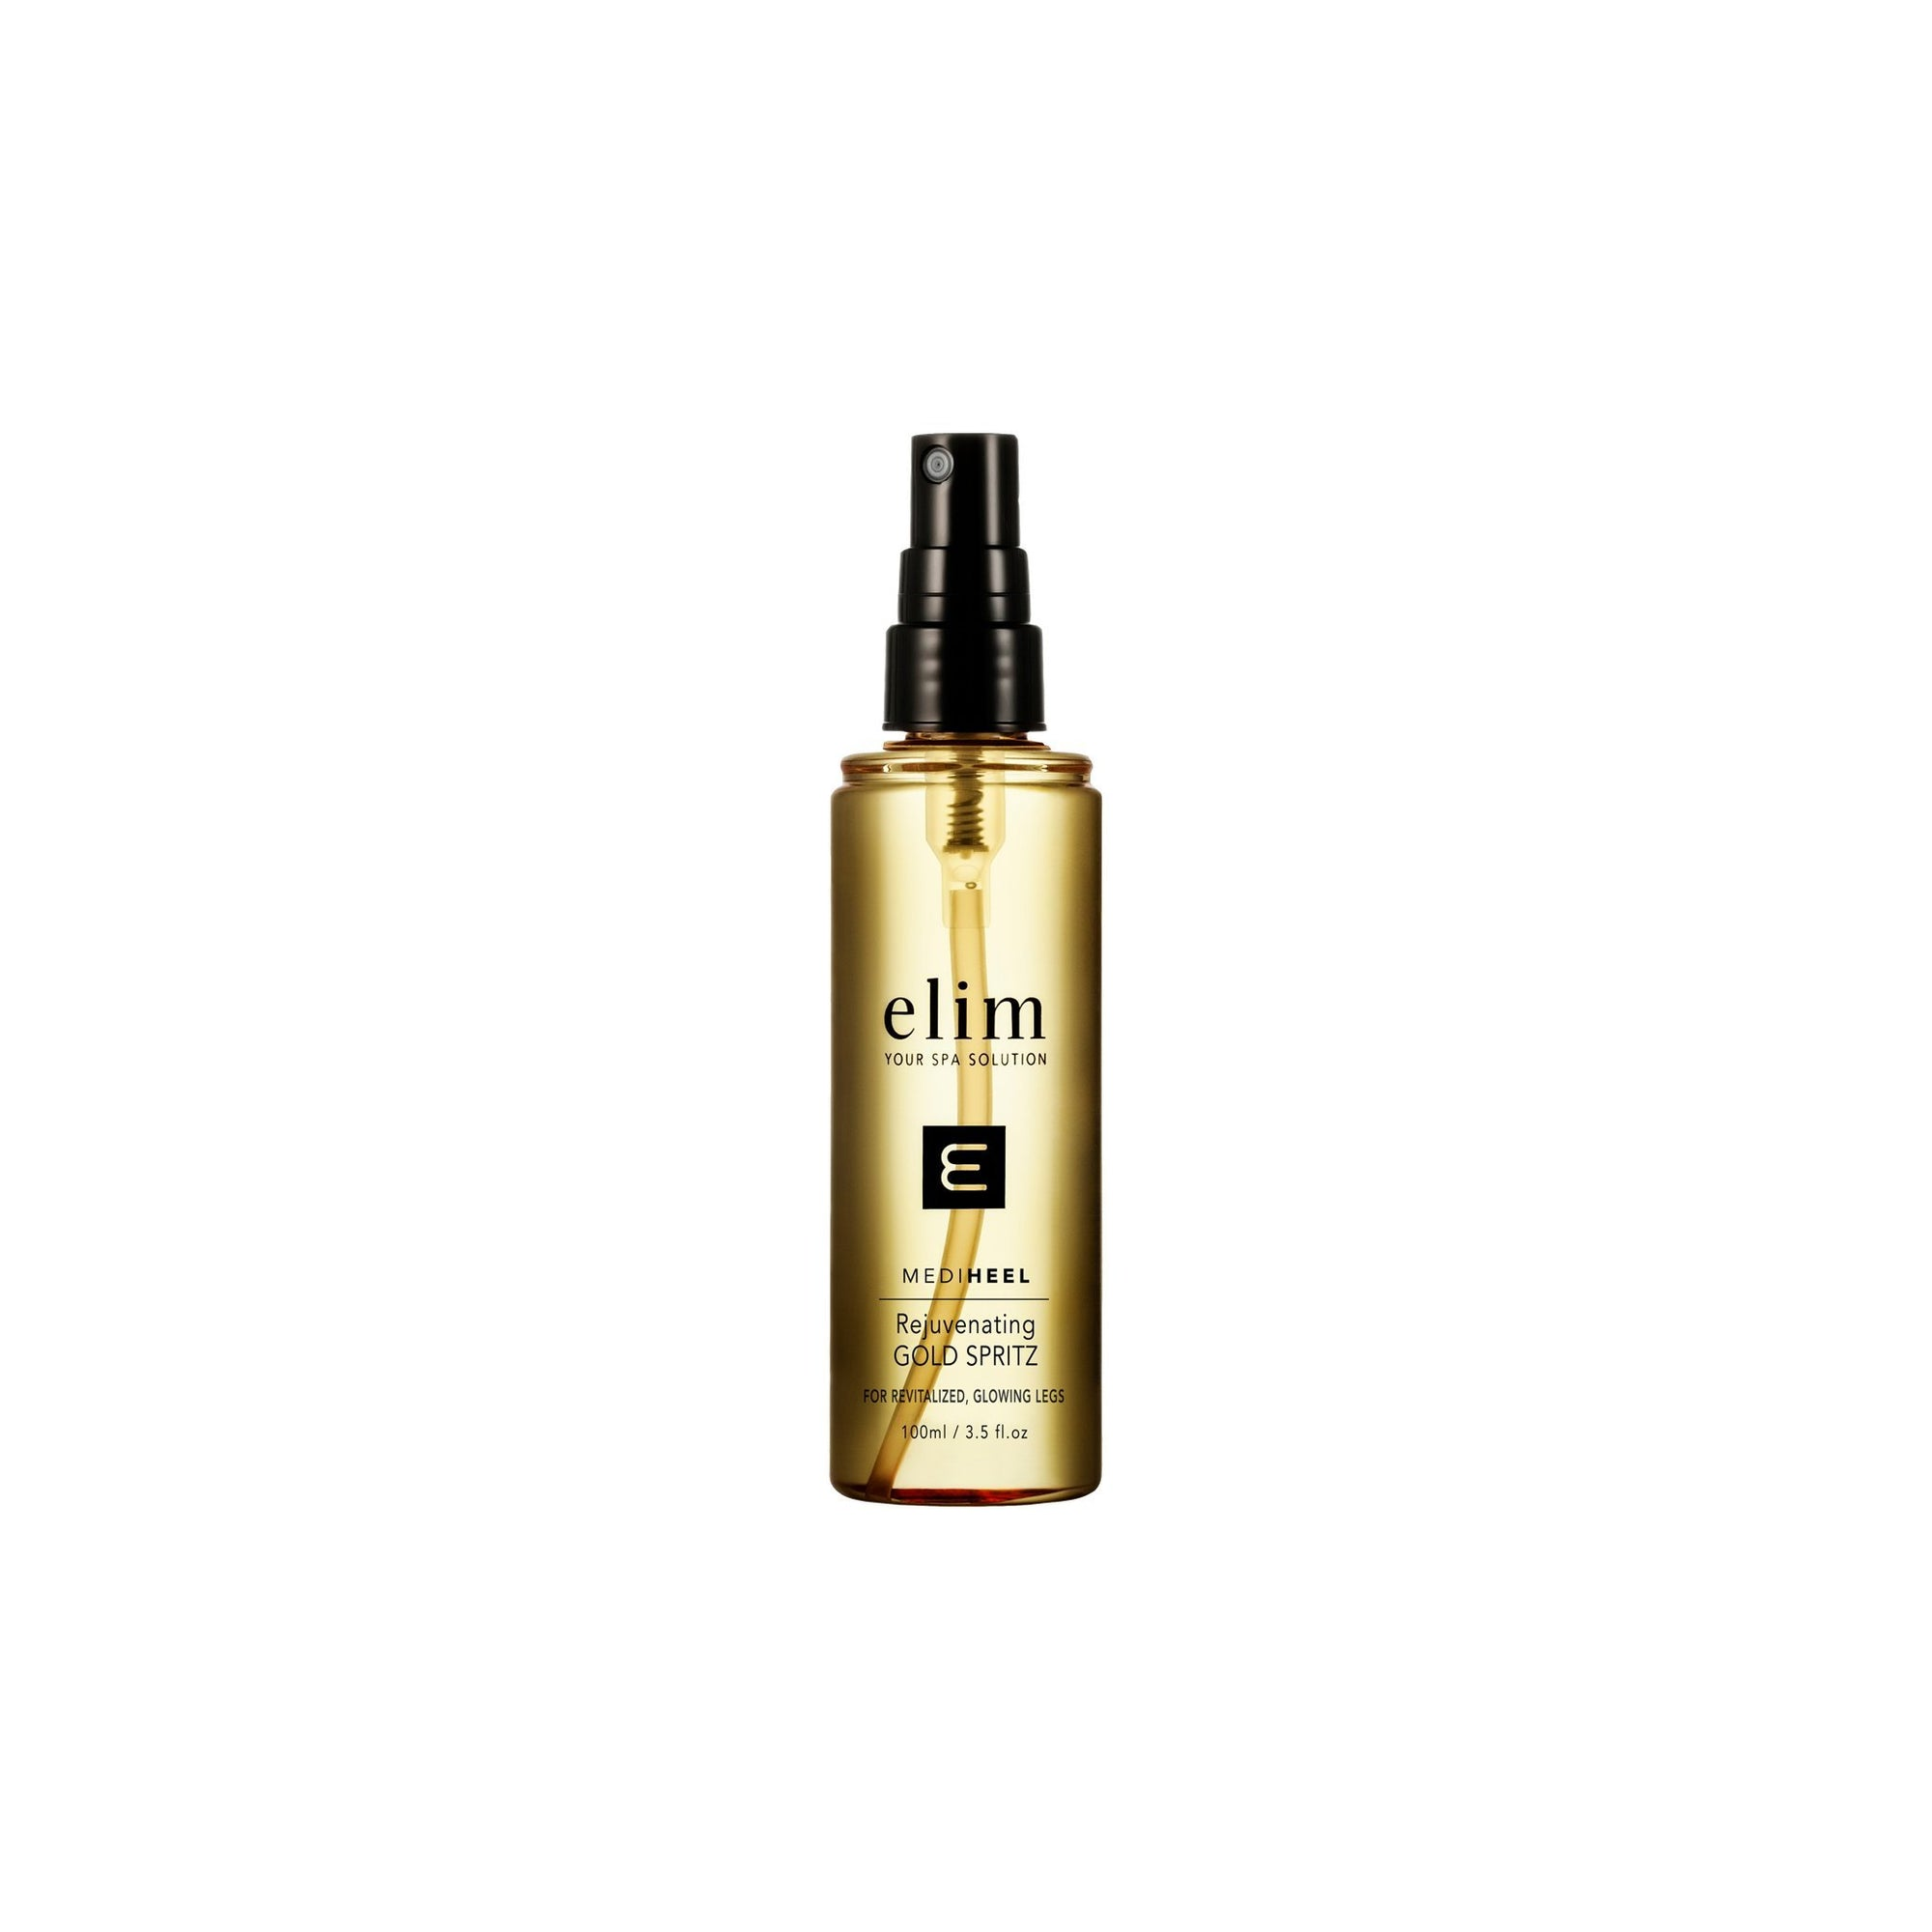 Elim MediHeel Rejuvenating Gold Spritz Liquid Gold Body Shimmer 100ml